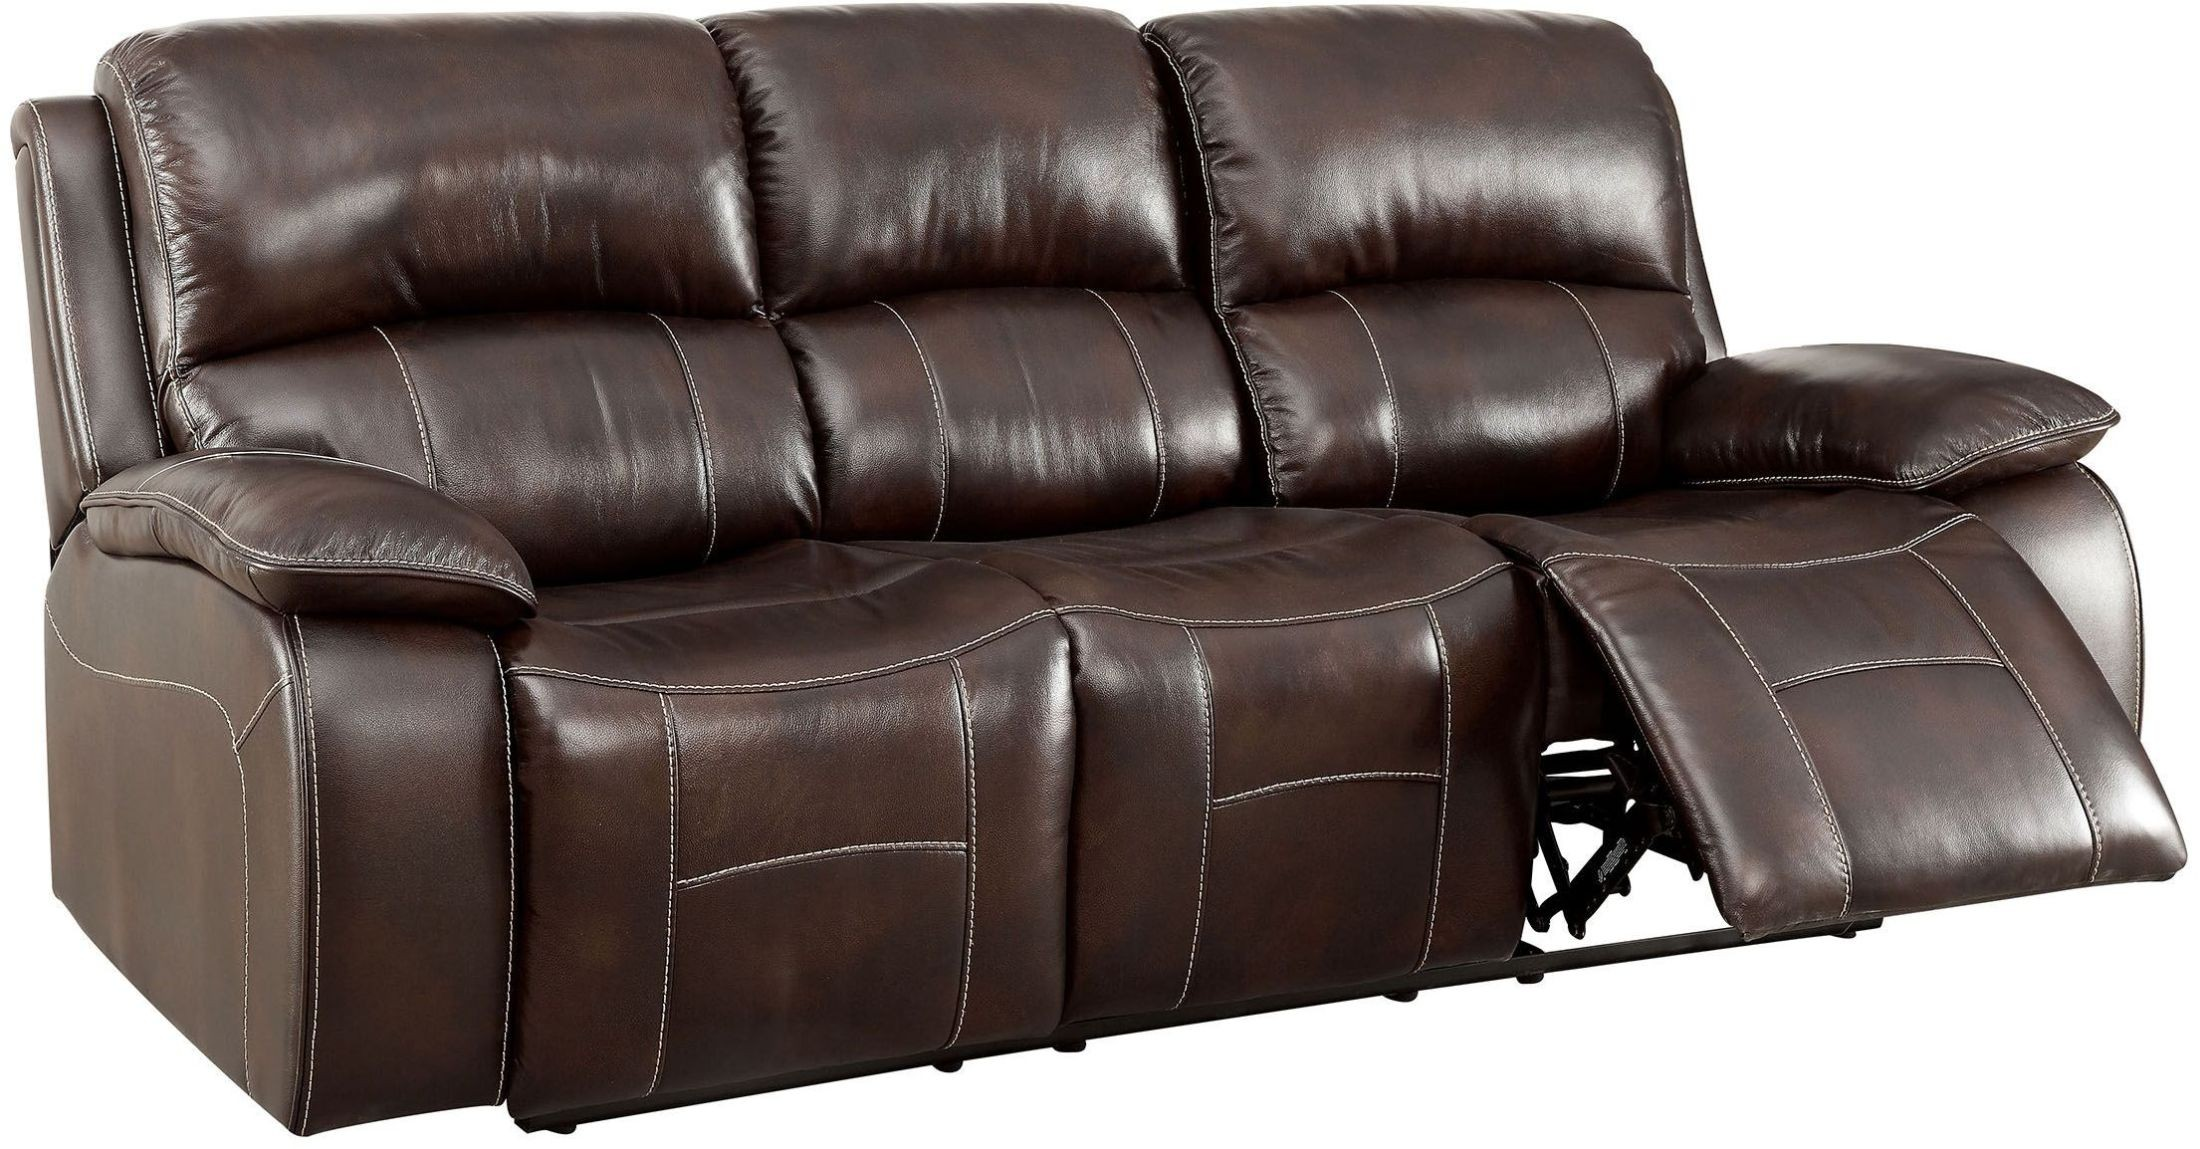 Ruth Brown Leather Reclining Sofa from Furniture of America